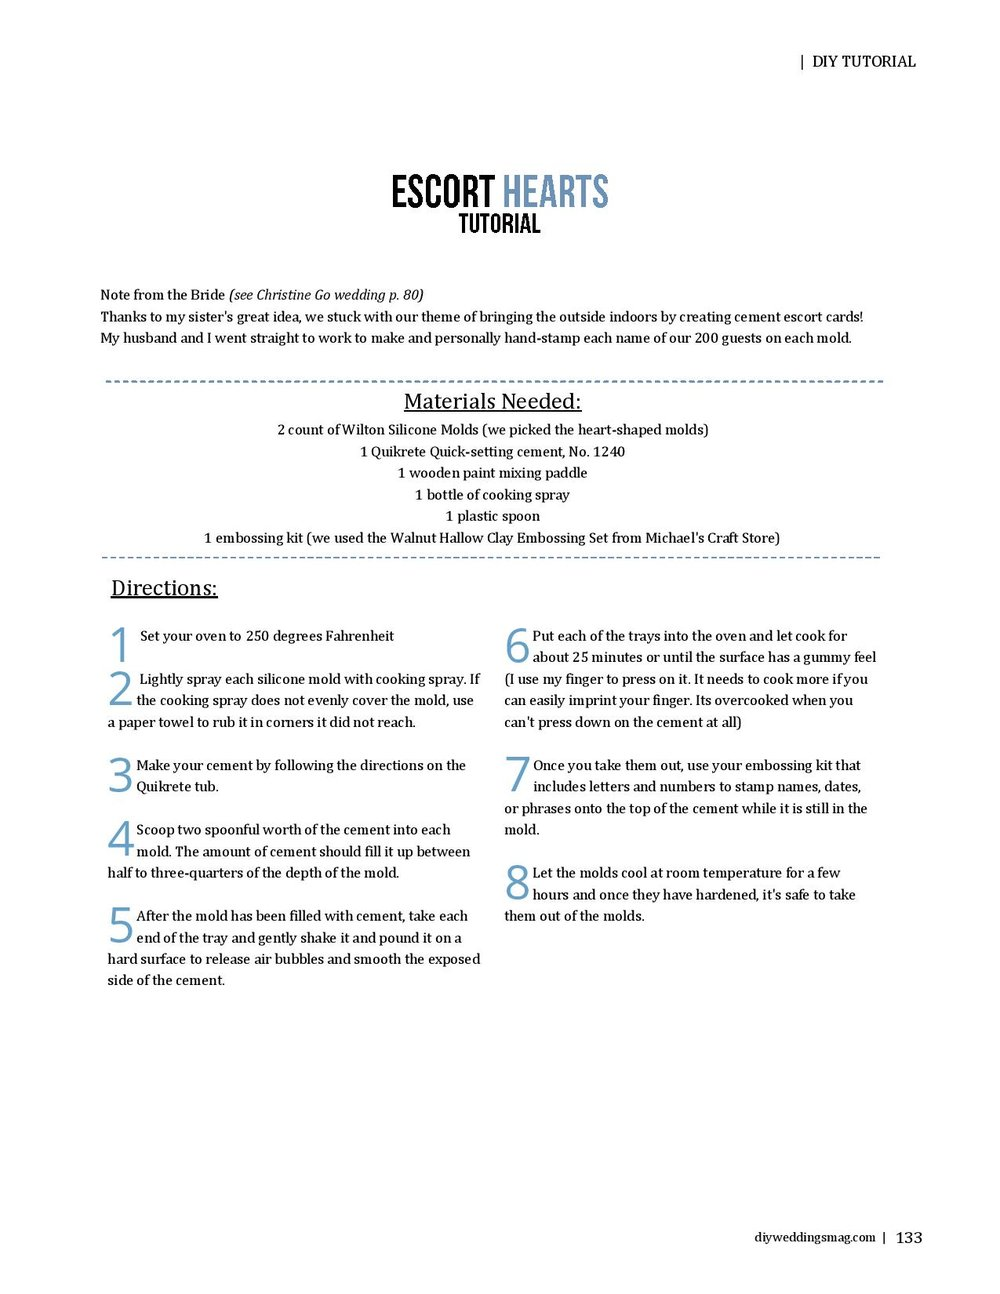 Escort Hearts Tutorial-page-002.jpg